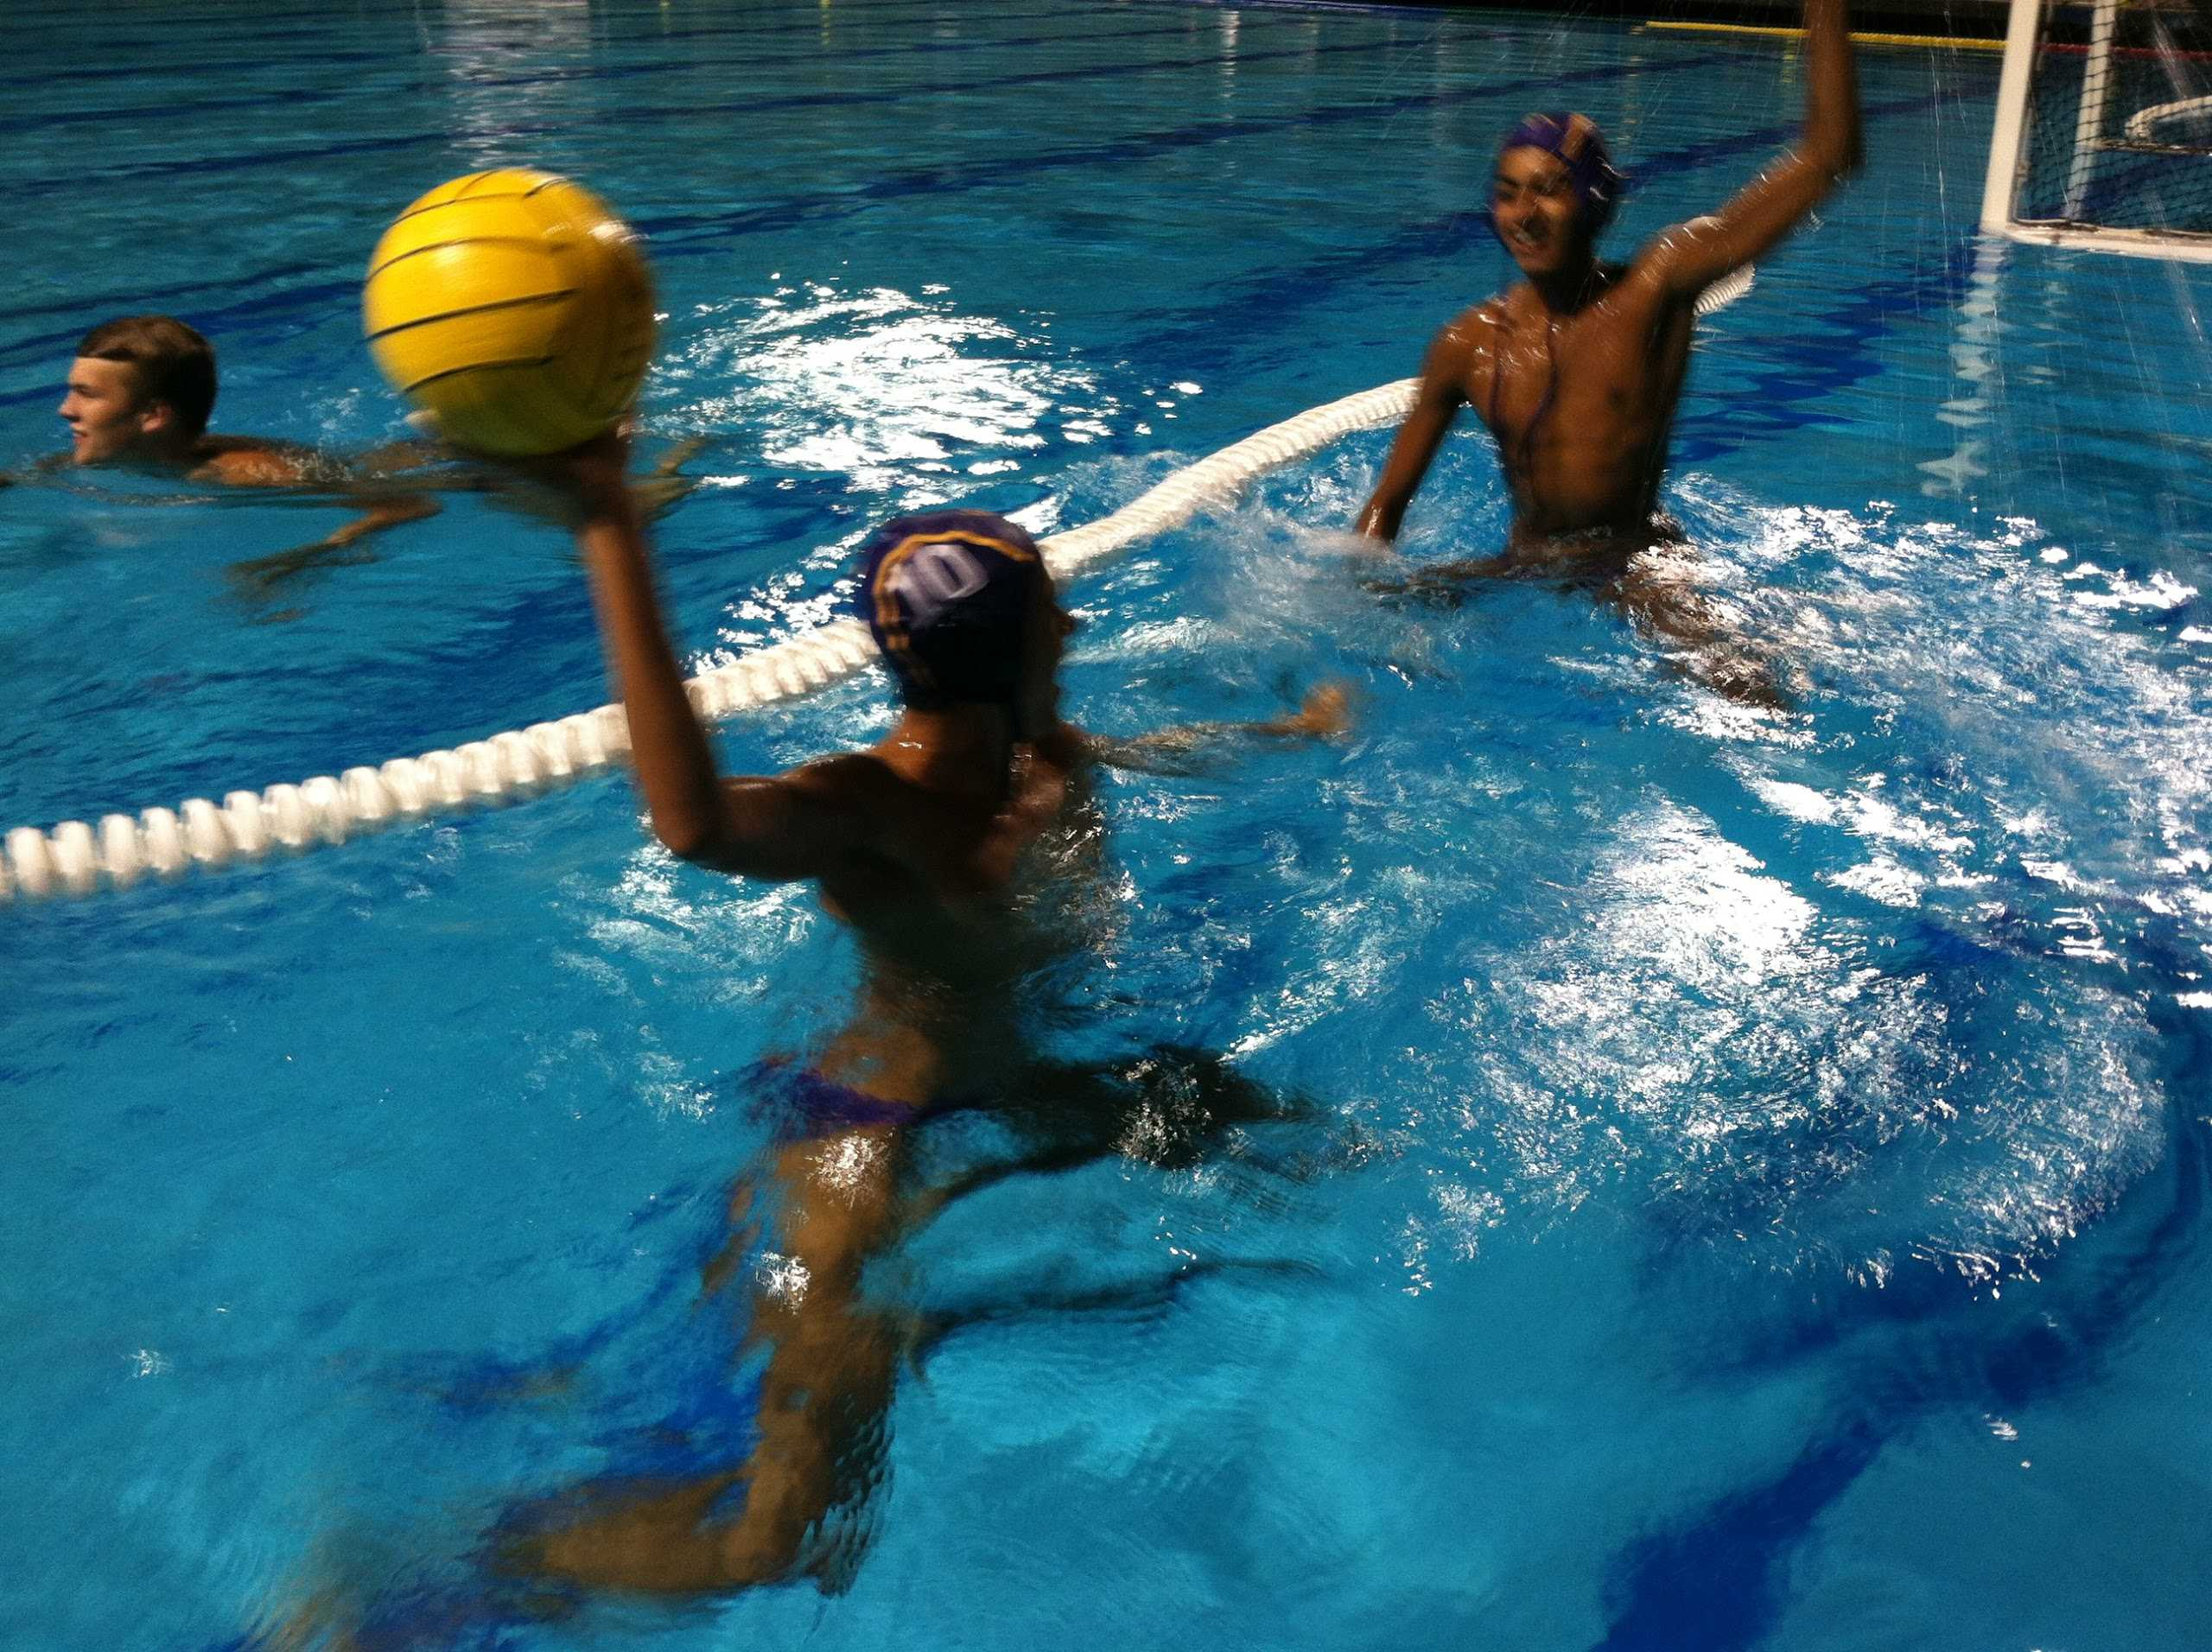 BOYS WATER POLO: MATADORS LOSE CLOSE GAME AGAINST MOUNTAIN VIEW HIGH SCHOOL IN CLOSING MINUTES